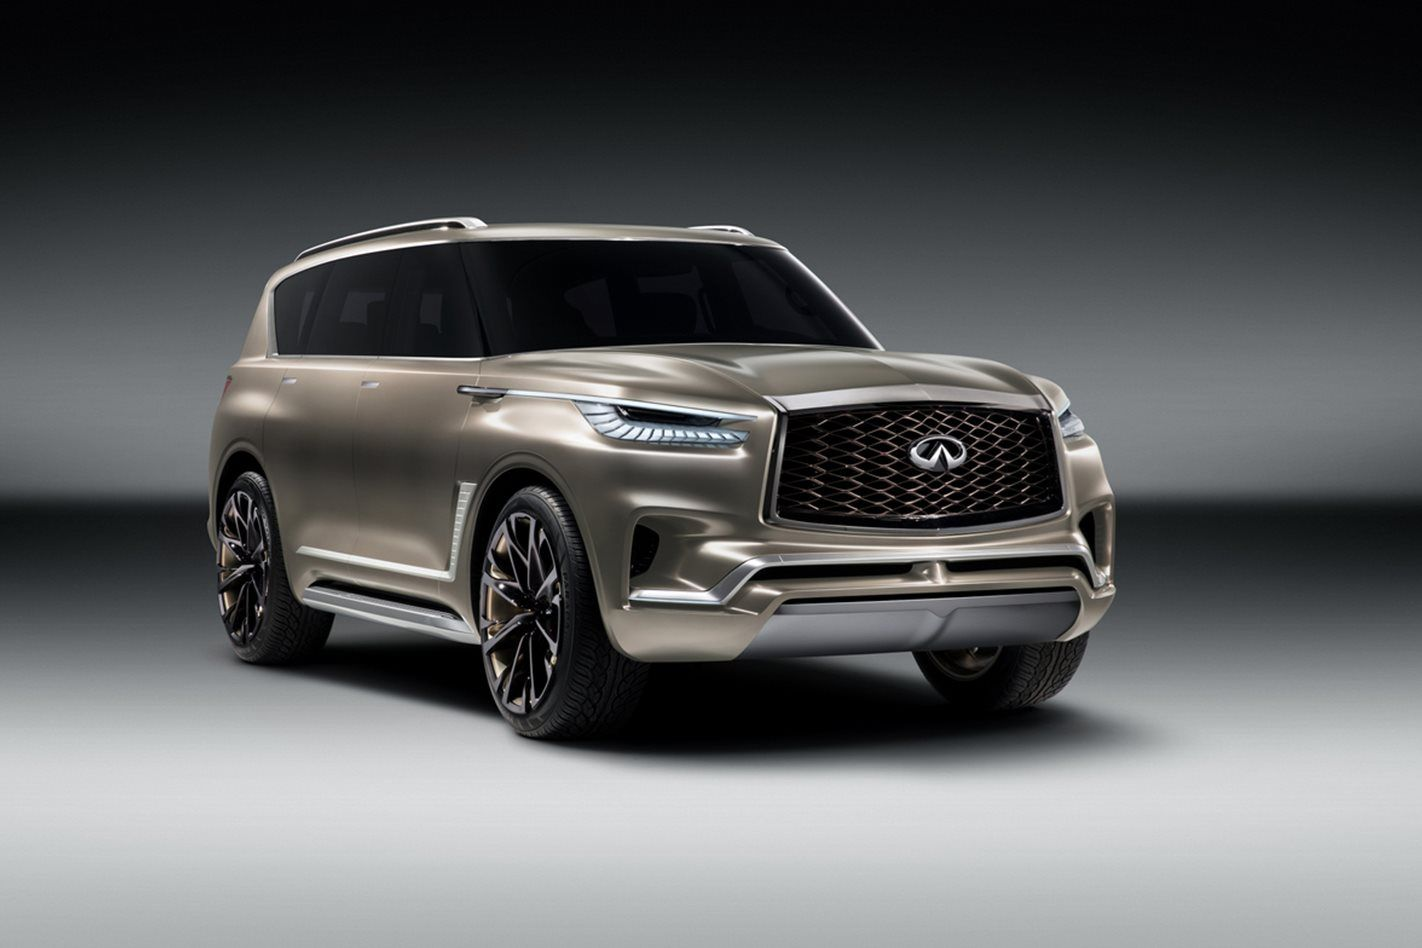 2021 infiniti qx80 what we know and what to expect  高級